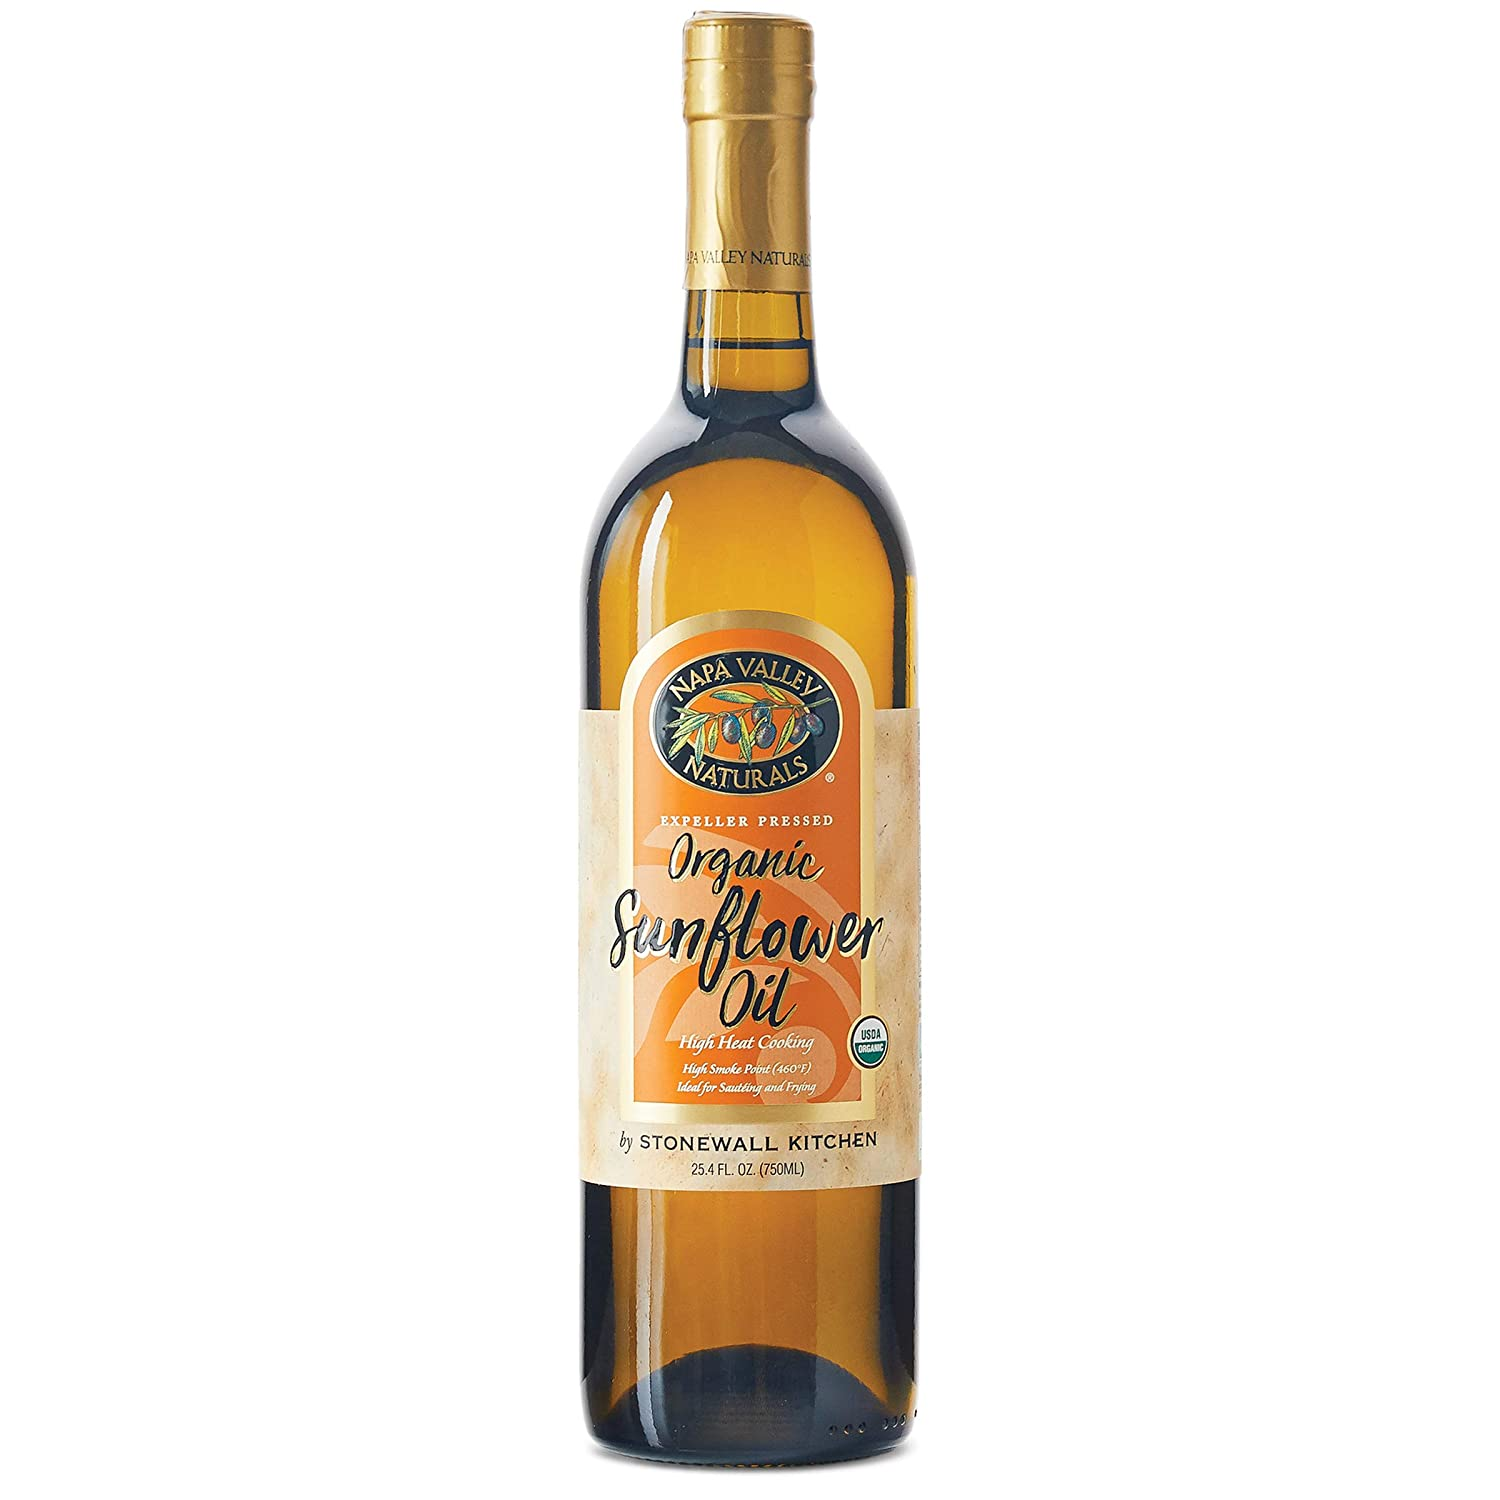 Napa Valley Naturals Organic Sunflower Oil, 25.4 Ounce